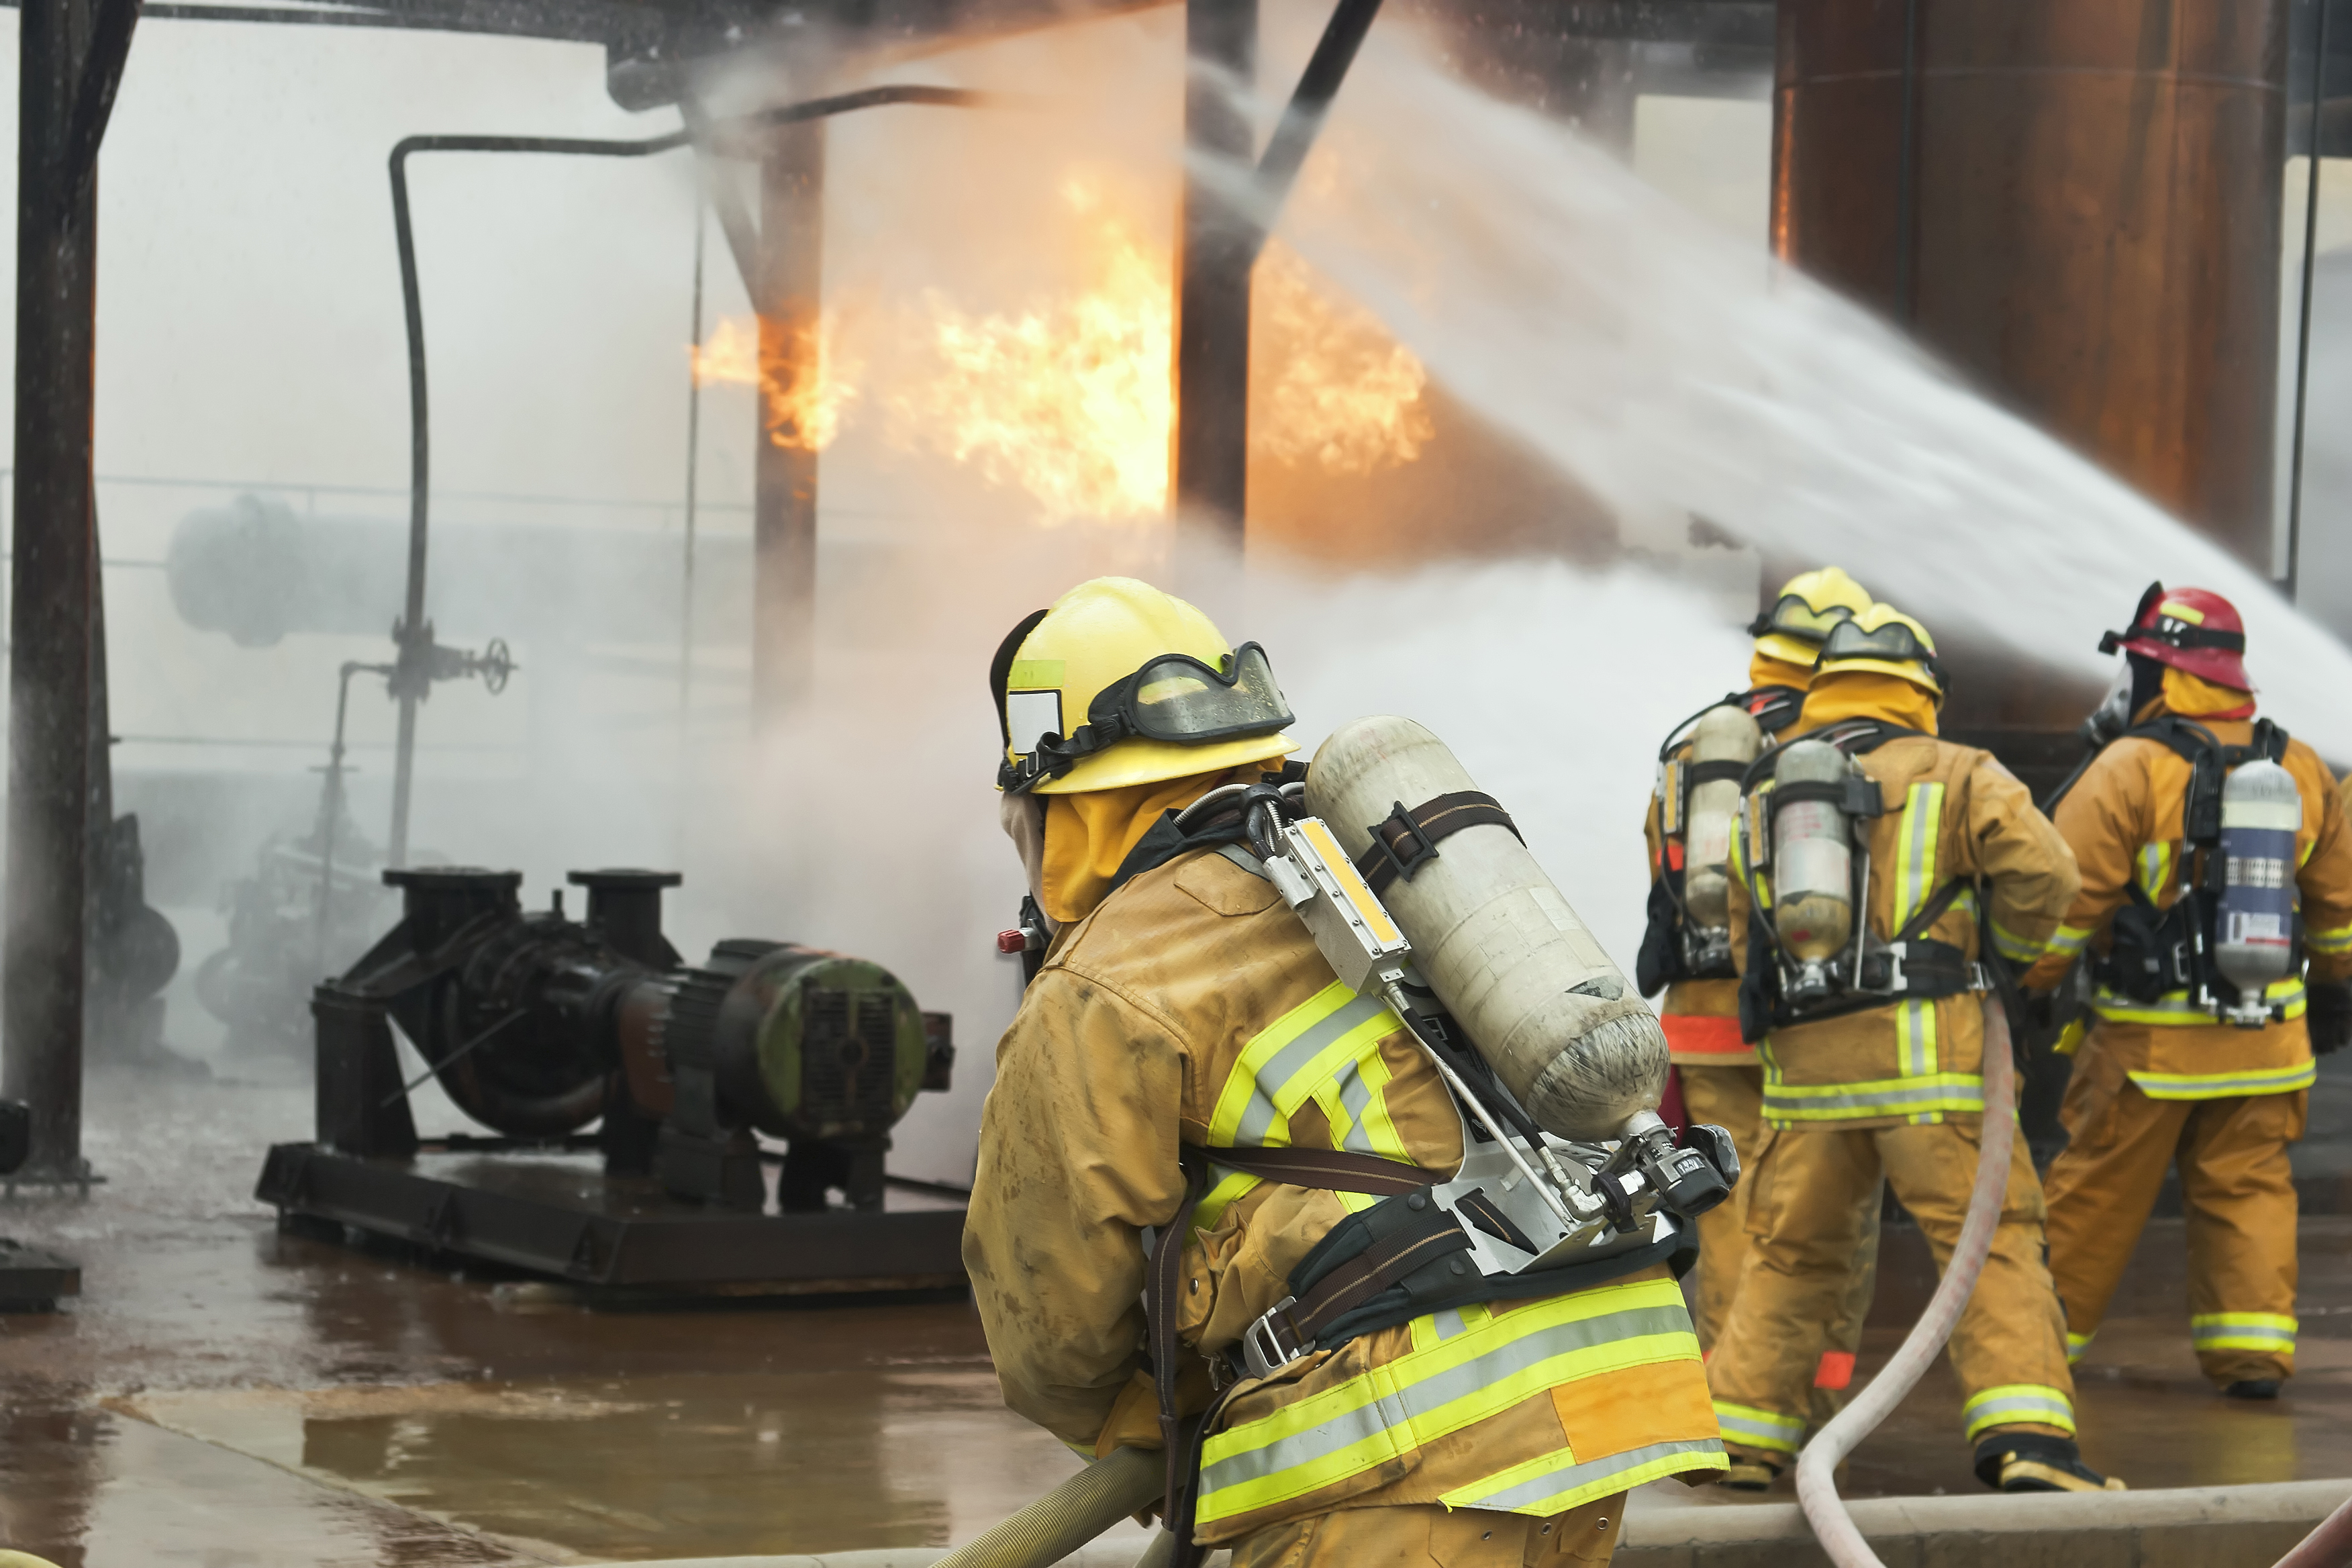 Too much variation in fire and rescue services, says report